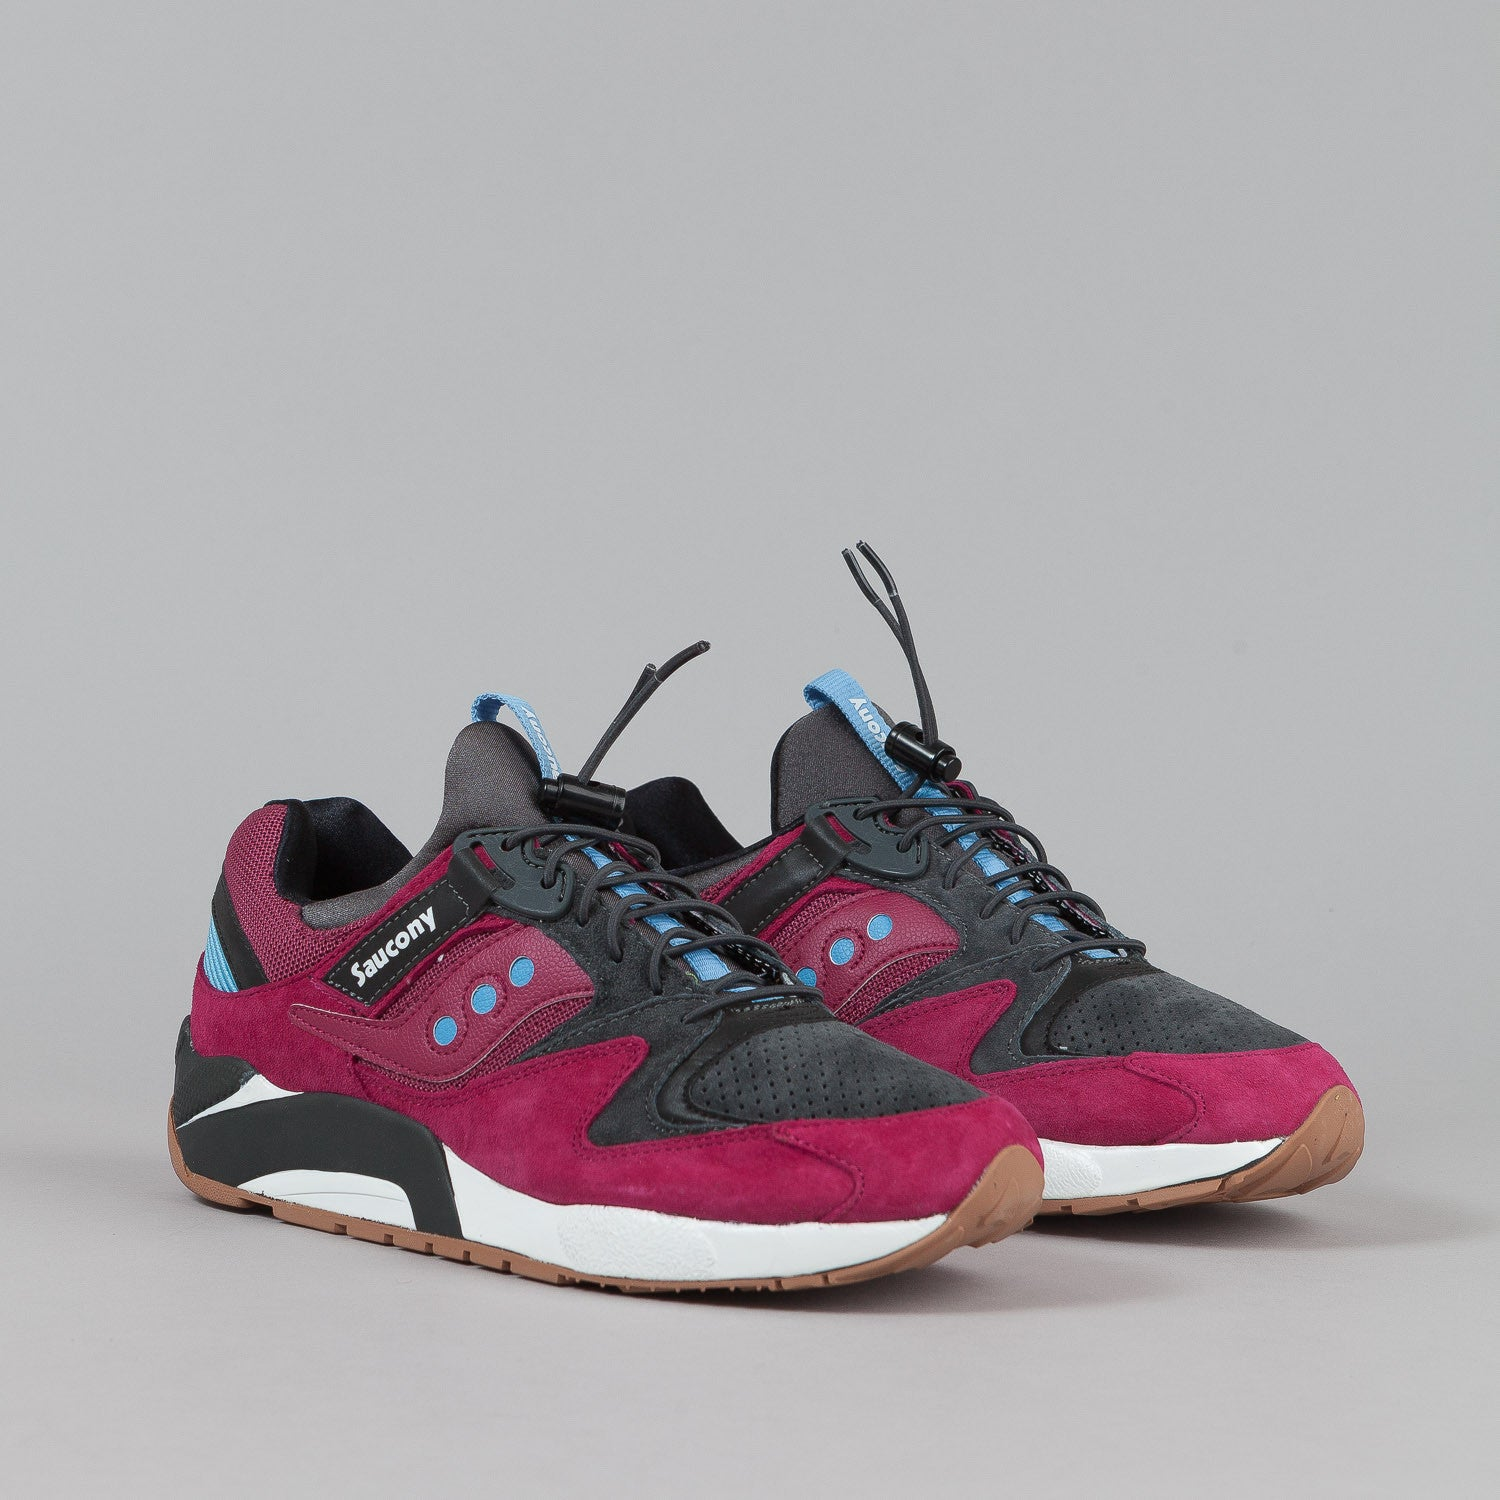 Saucony Grid 9000 Shoes Premium - Red / Charcoal